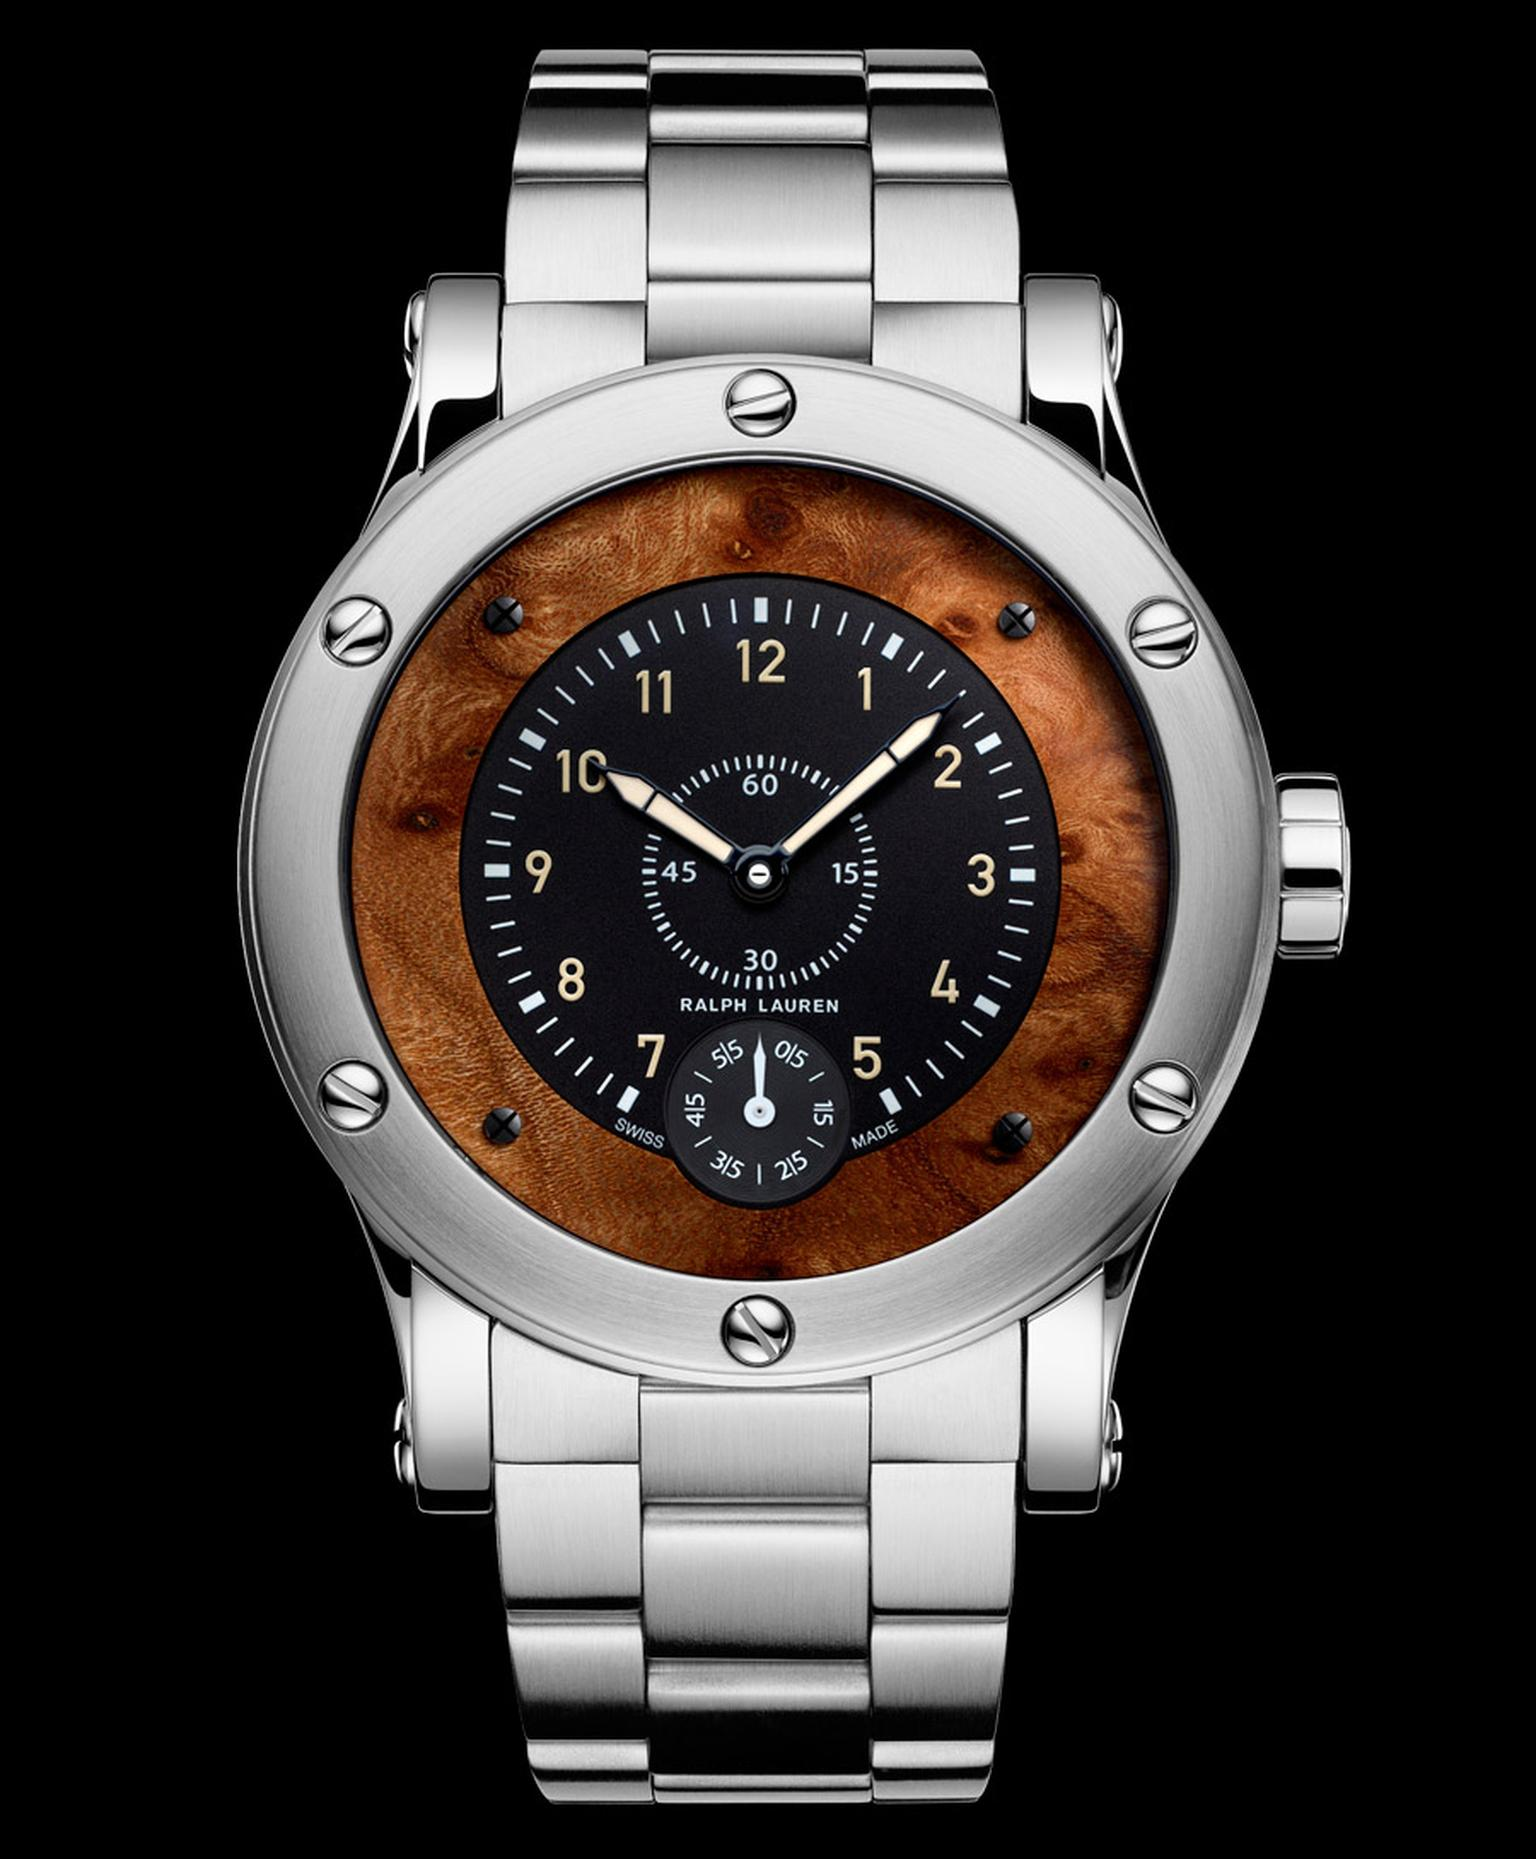 Ralph-Lauren_Automotive-watch_steel_HR.jpg